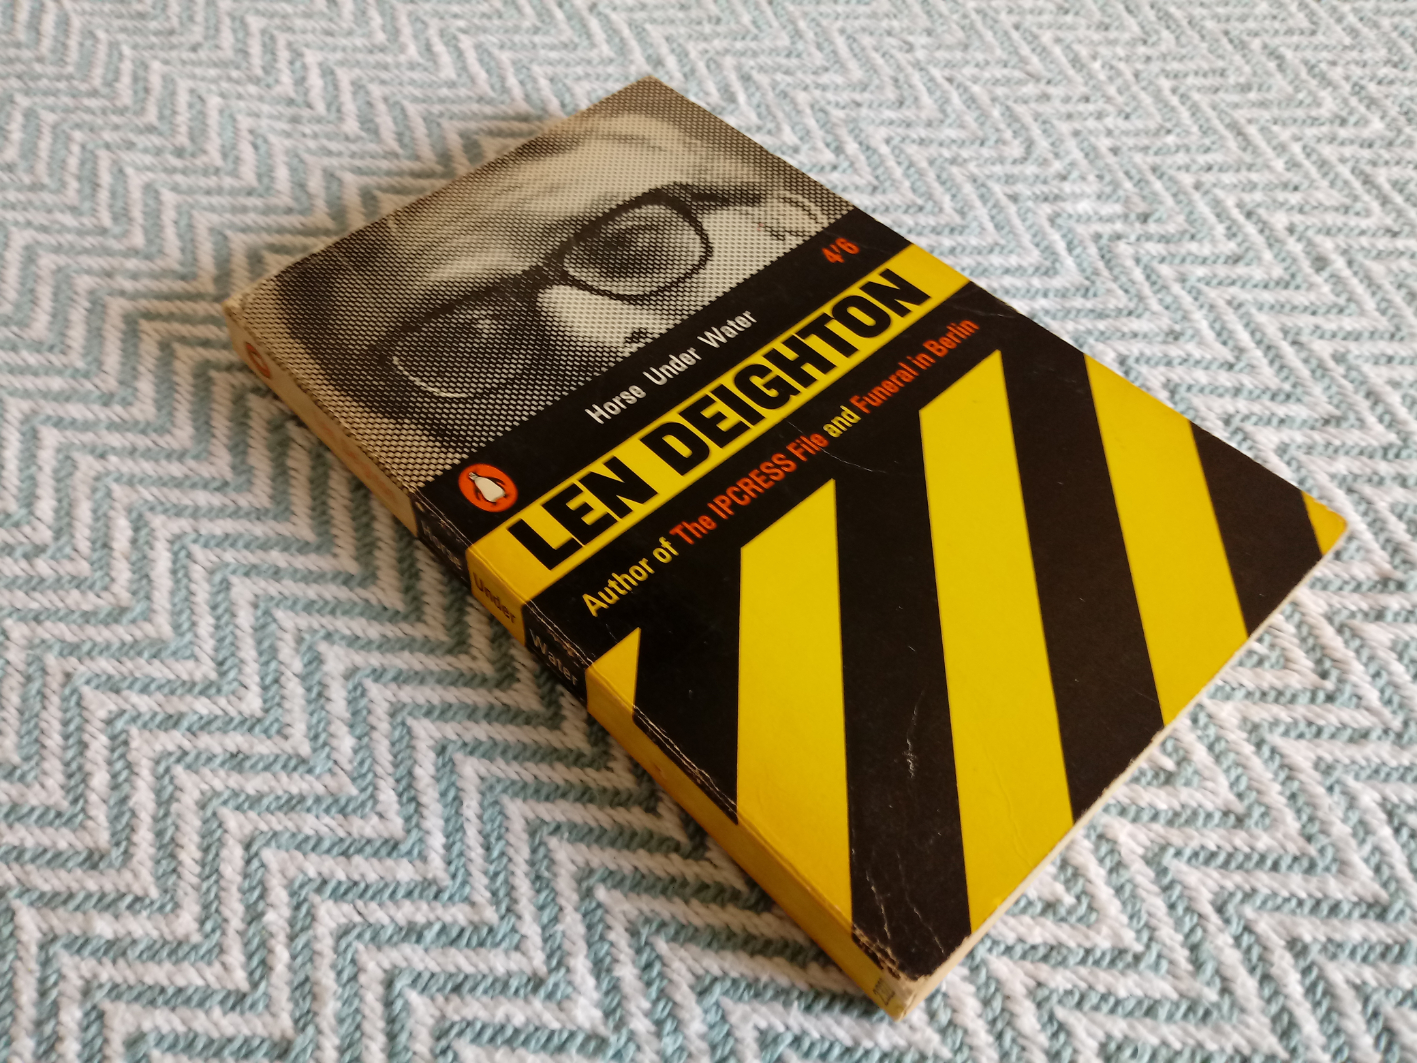 4 x Len Deighton softback books 1-Funeral in Berlin 256 pages publish Penguin books 1966 in good